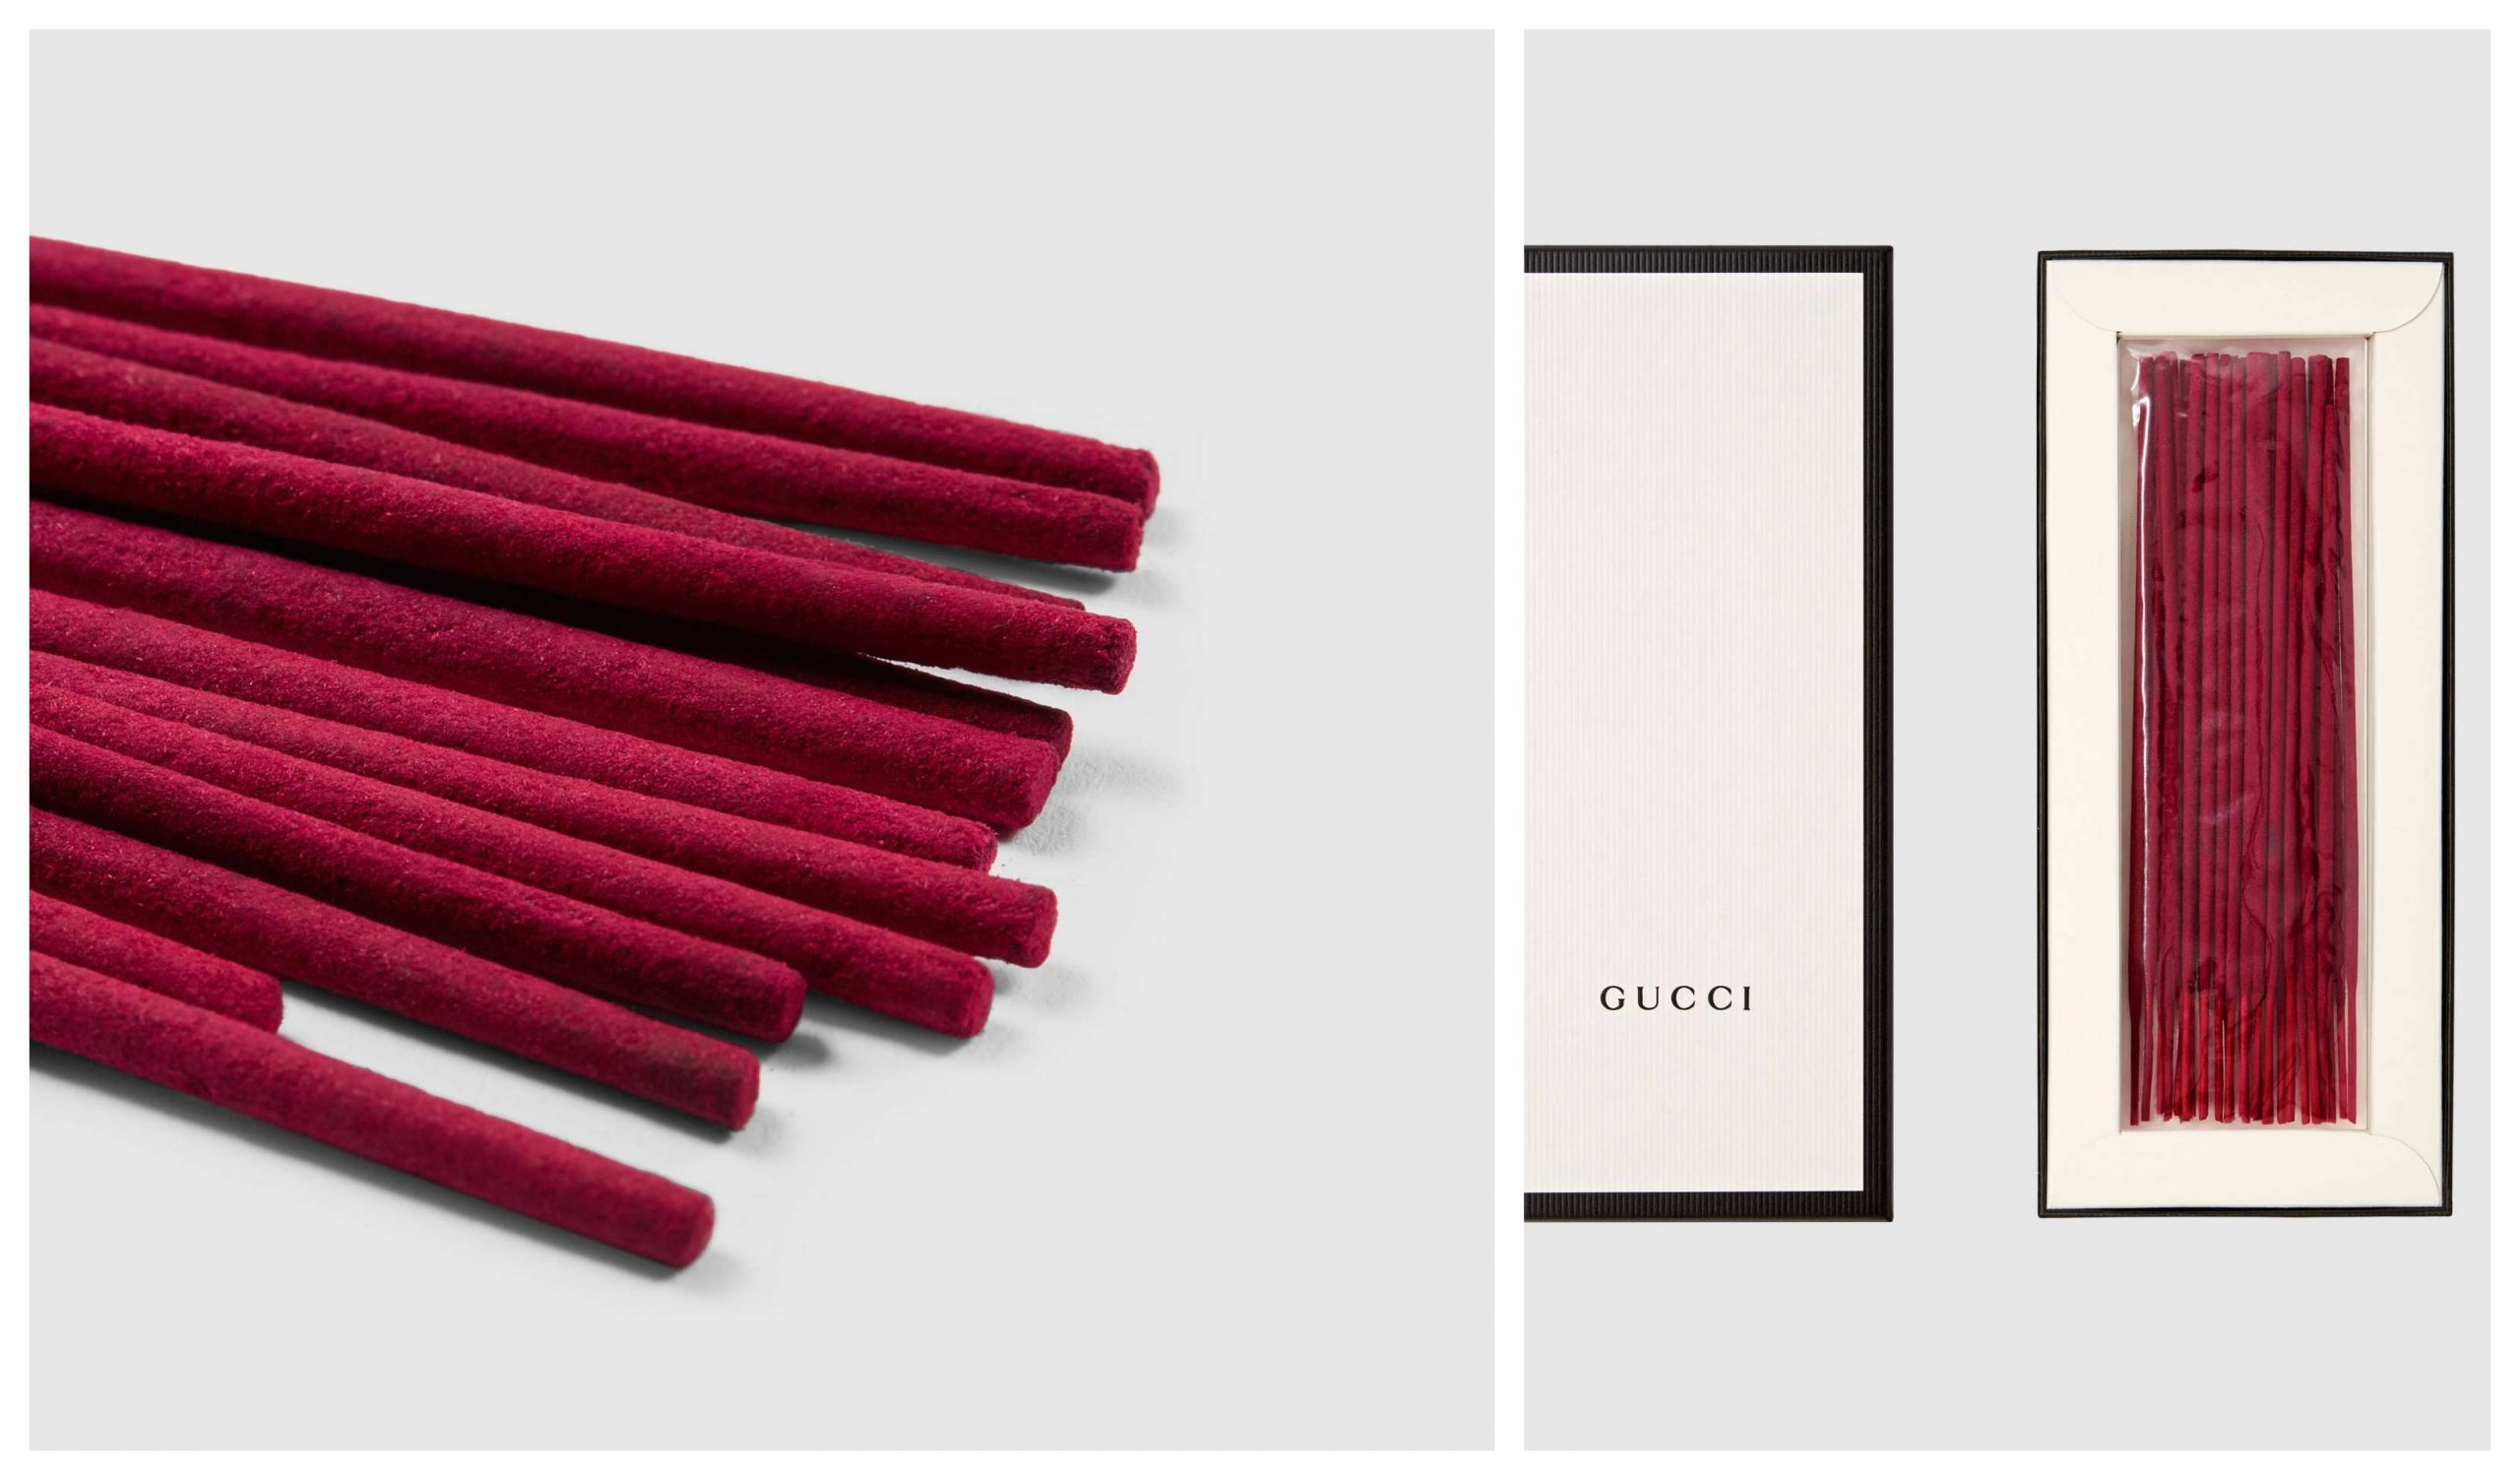 An excuse when GUCCI sells NHANG (FLOWER) SWEETS at incredible prices right on the website